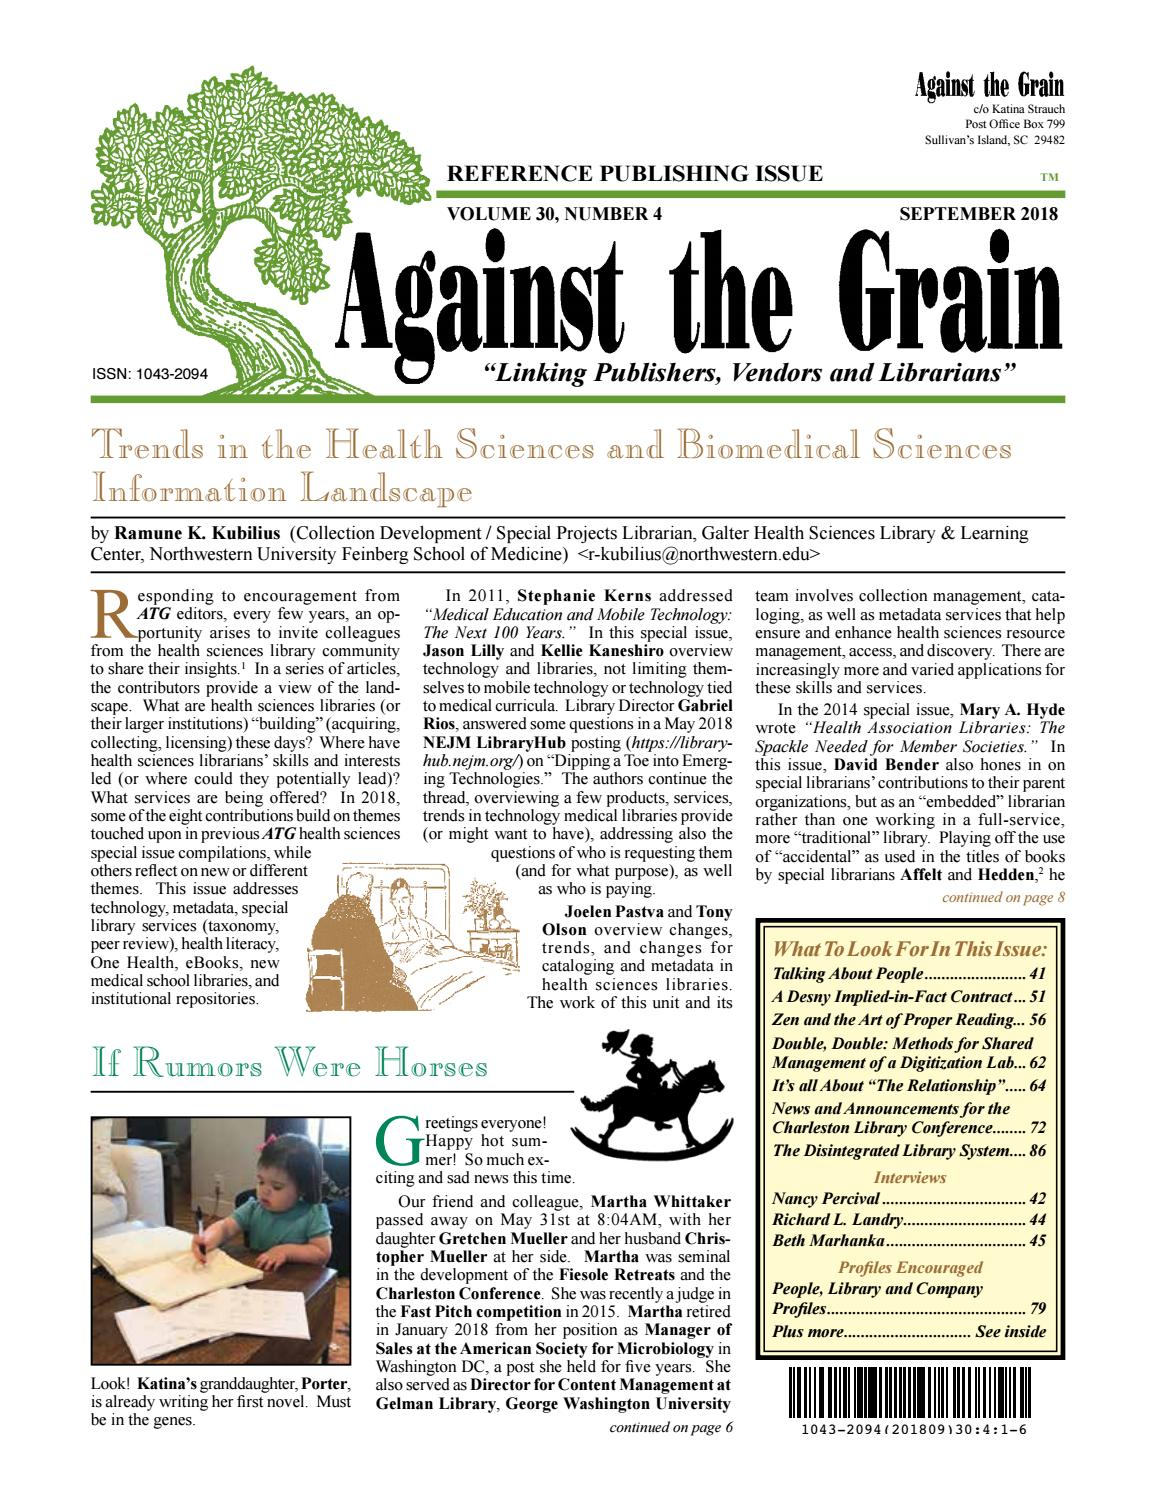 Against the Grain v30 #4 September 2018 by against-the-grain